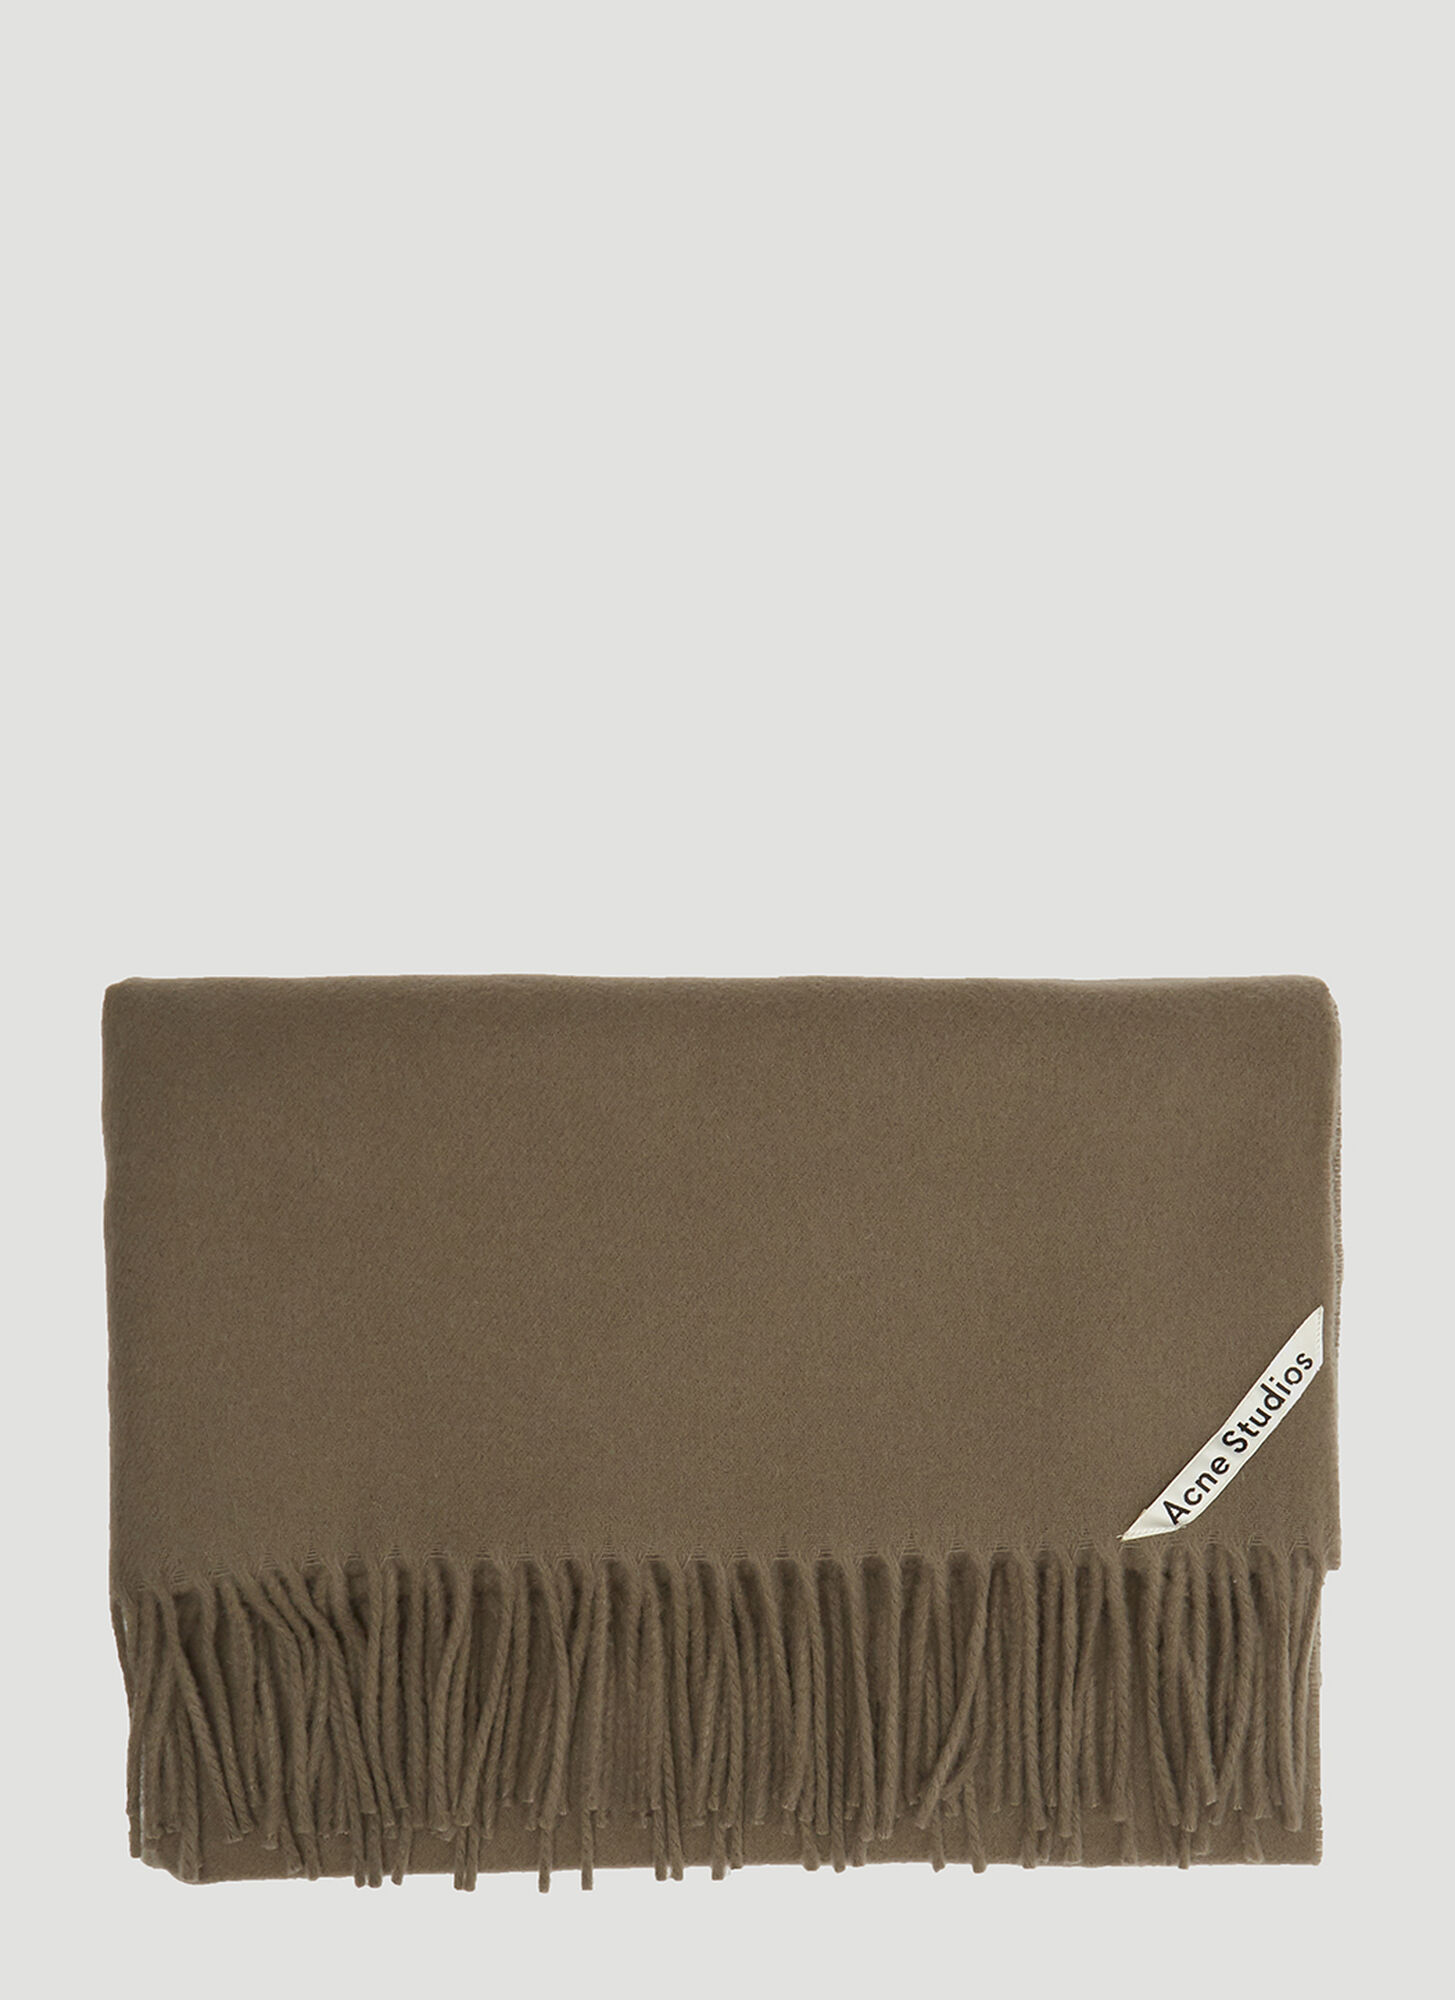 Acne Studios Canada New Scarf in Brown